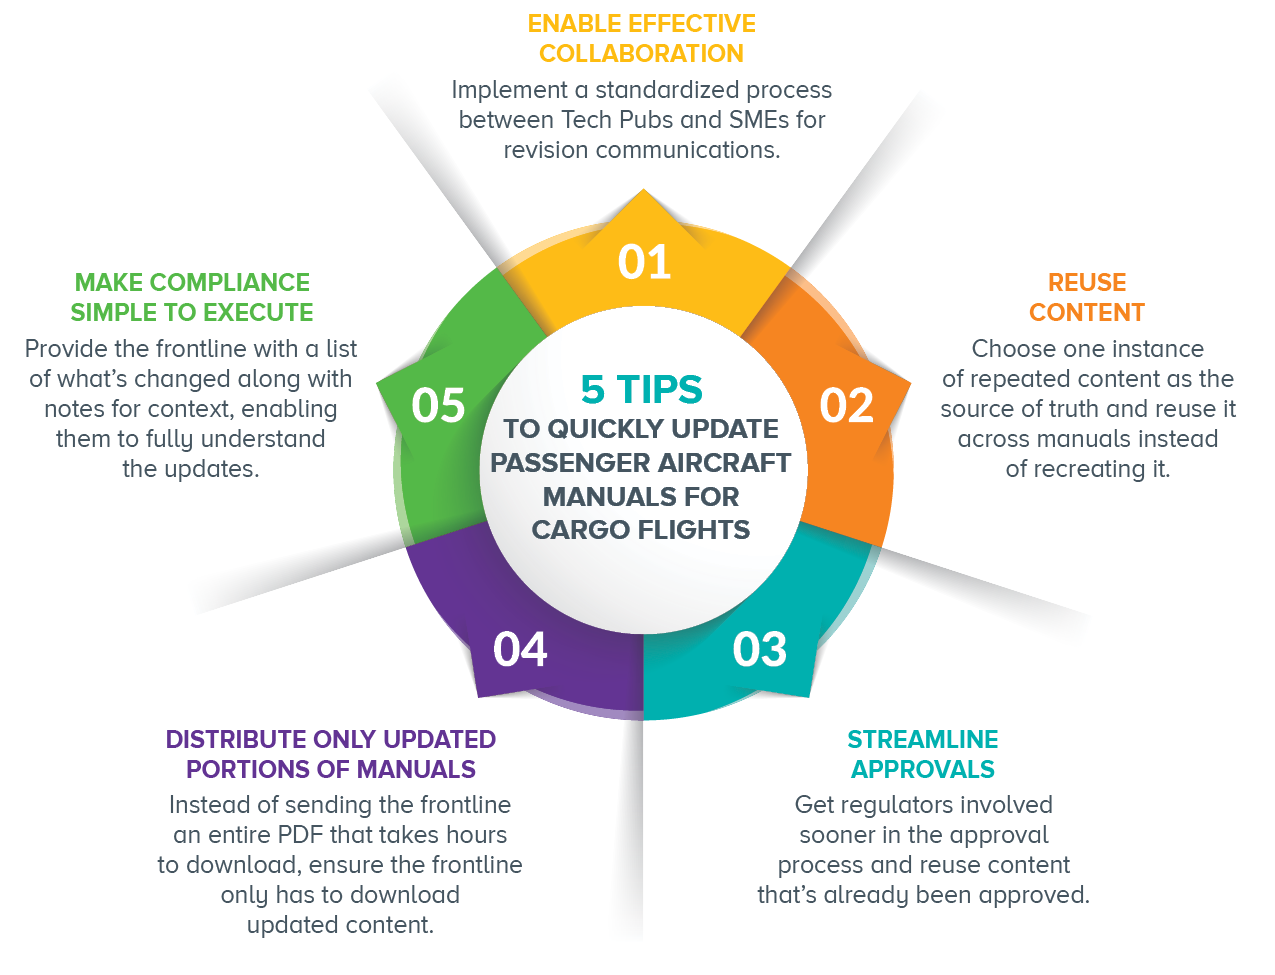 5 tips for quickly updating passenger aircraft manuals for cargo flights